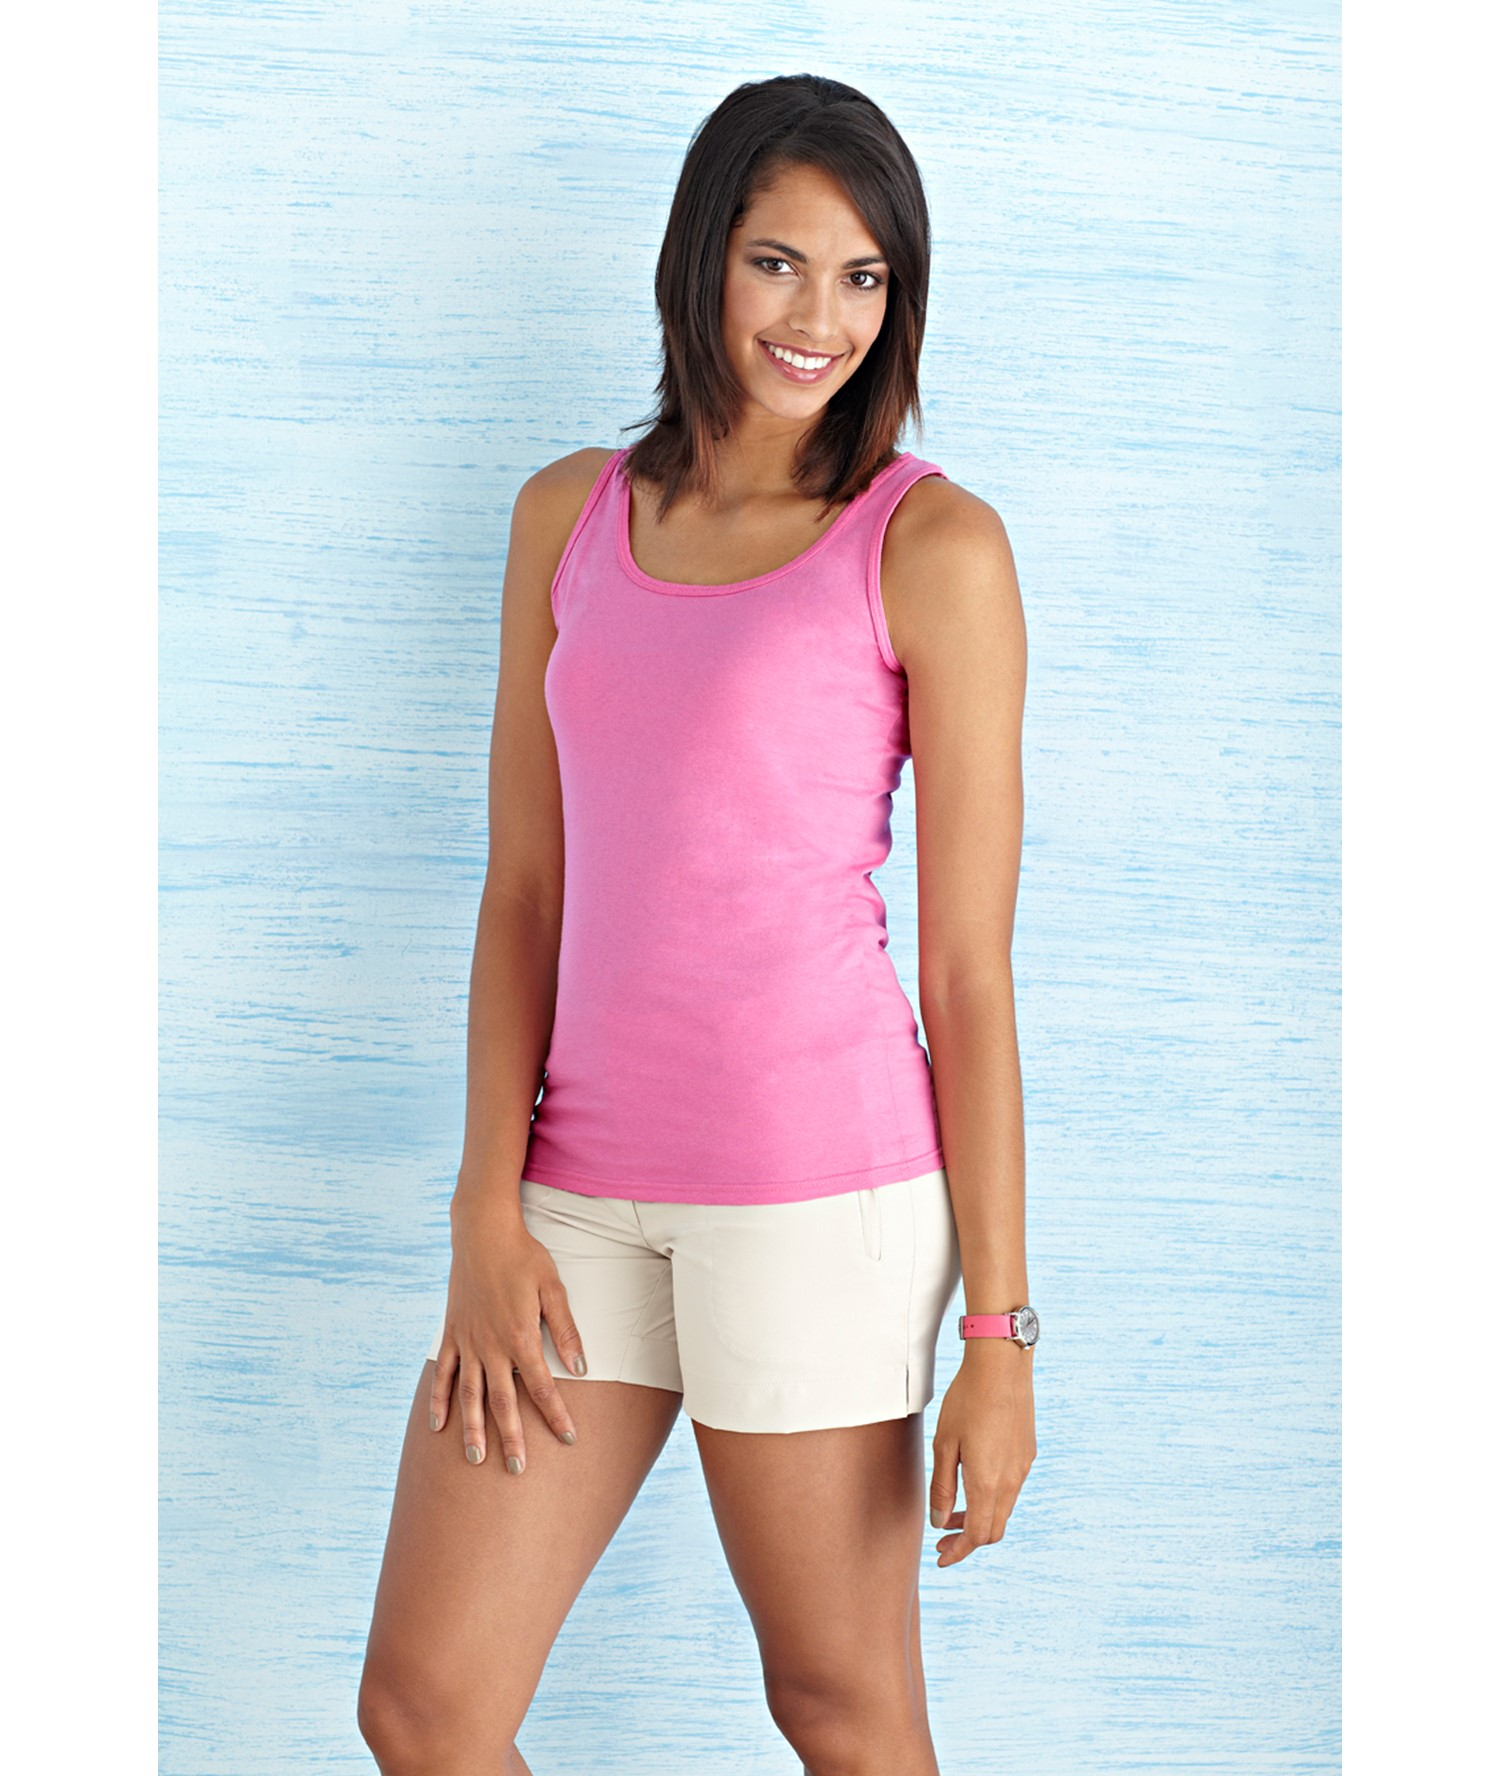 SOFTSTYLE® LADIES' TANK TOP